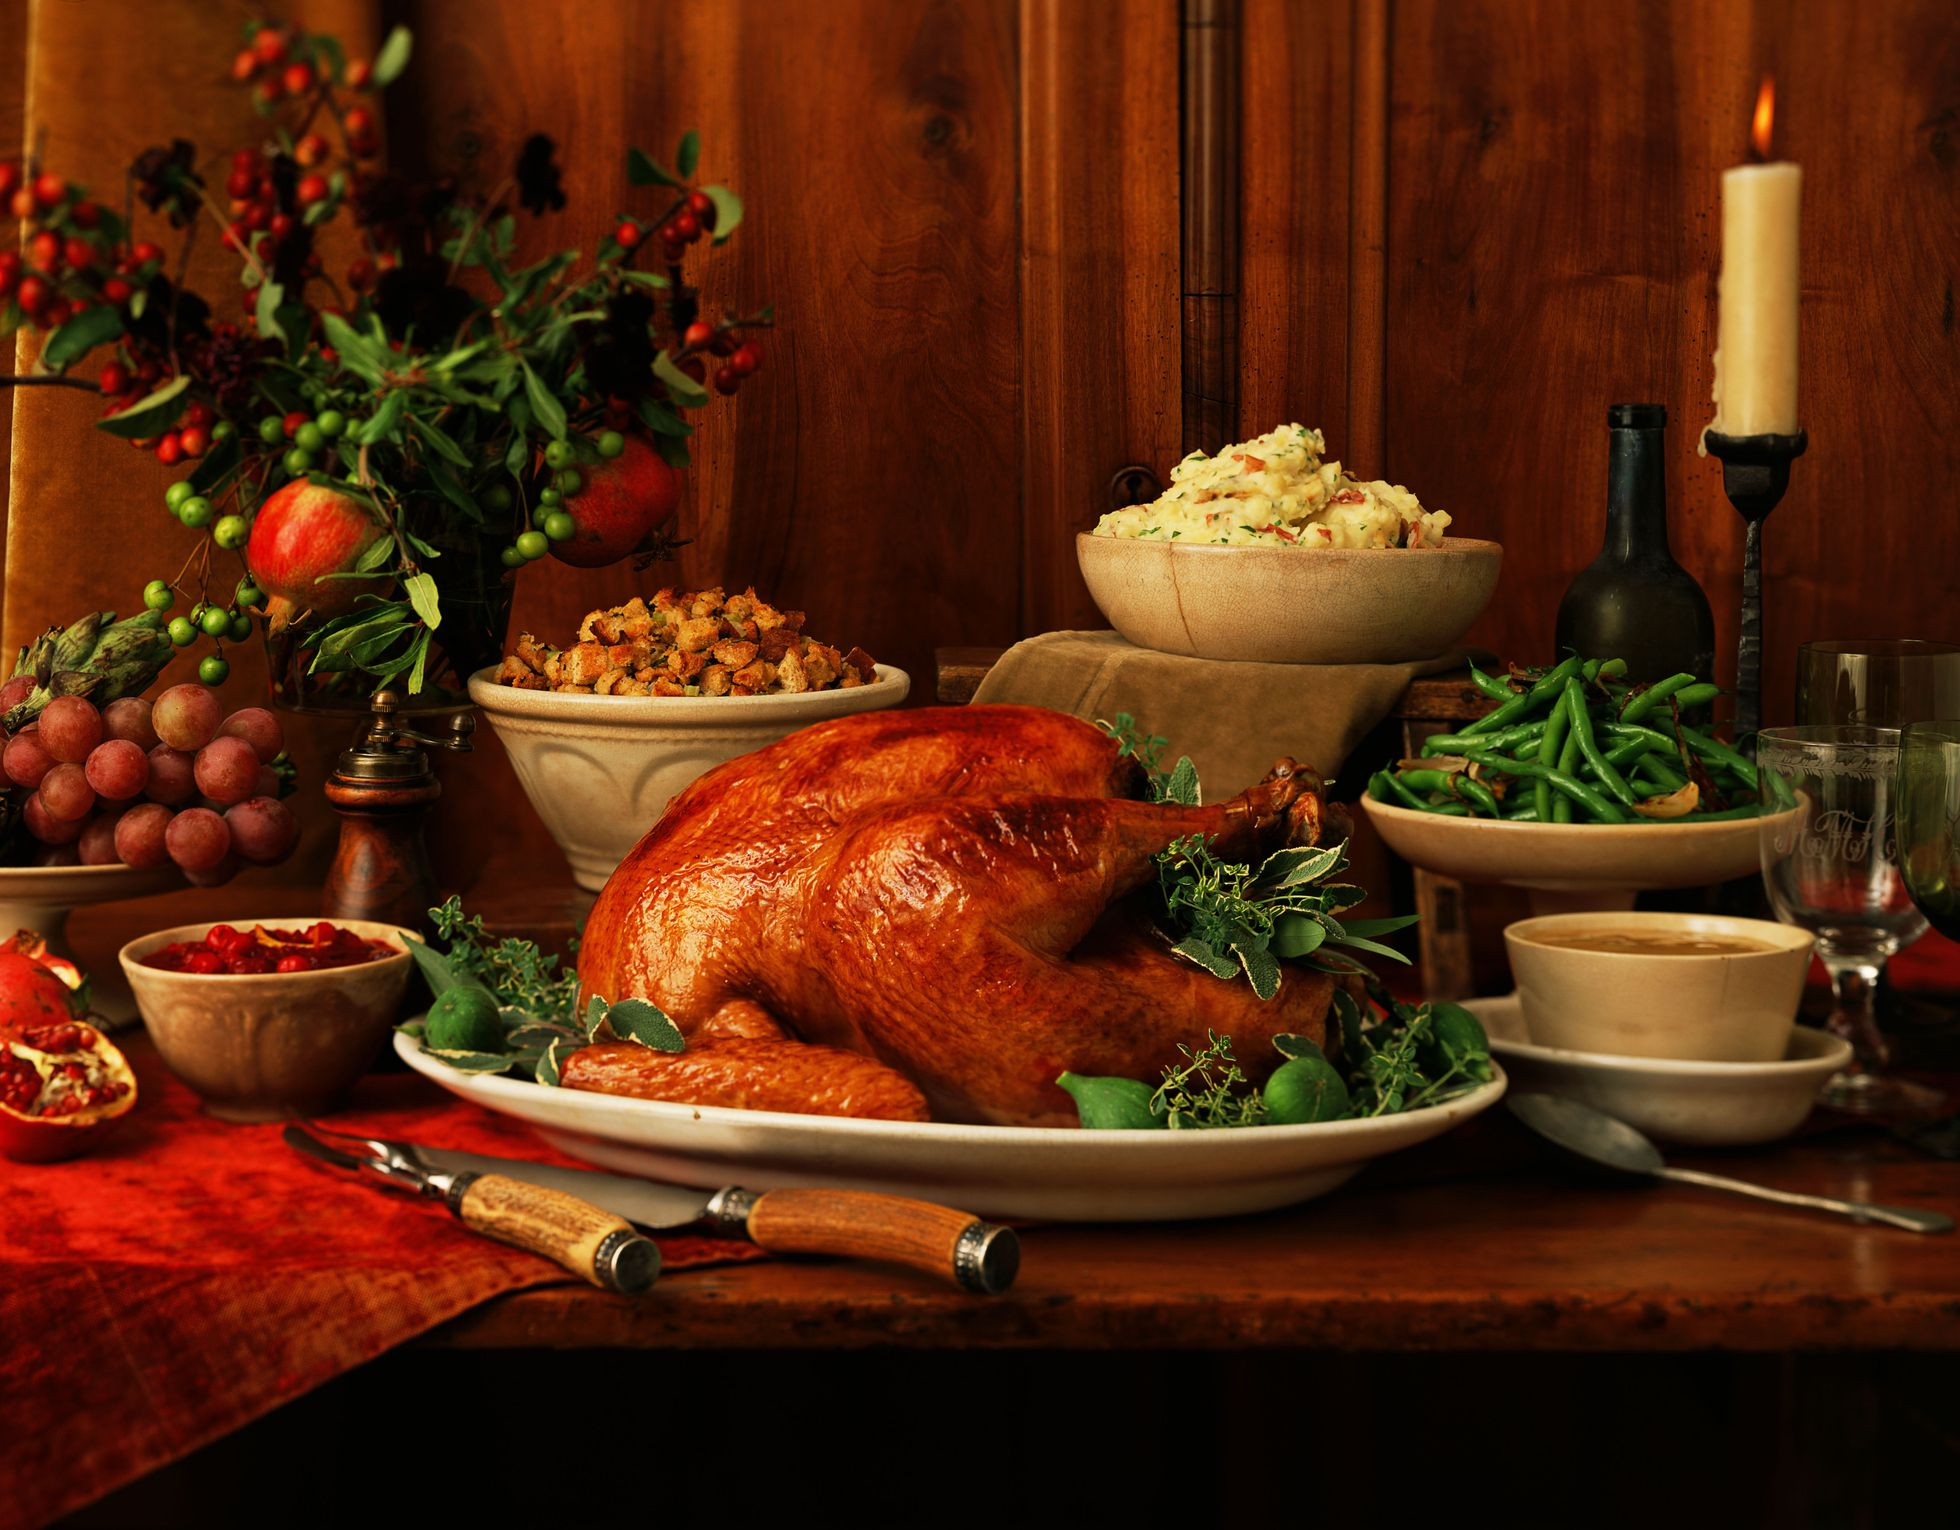 Fall Turkey Wallpaper Celebrating Thanksgiving In France Grocery Shopping And